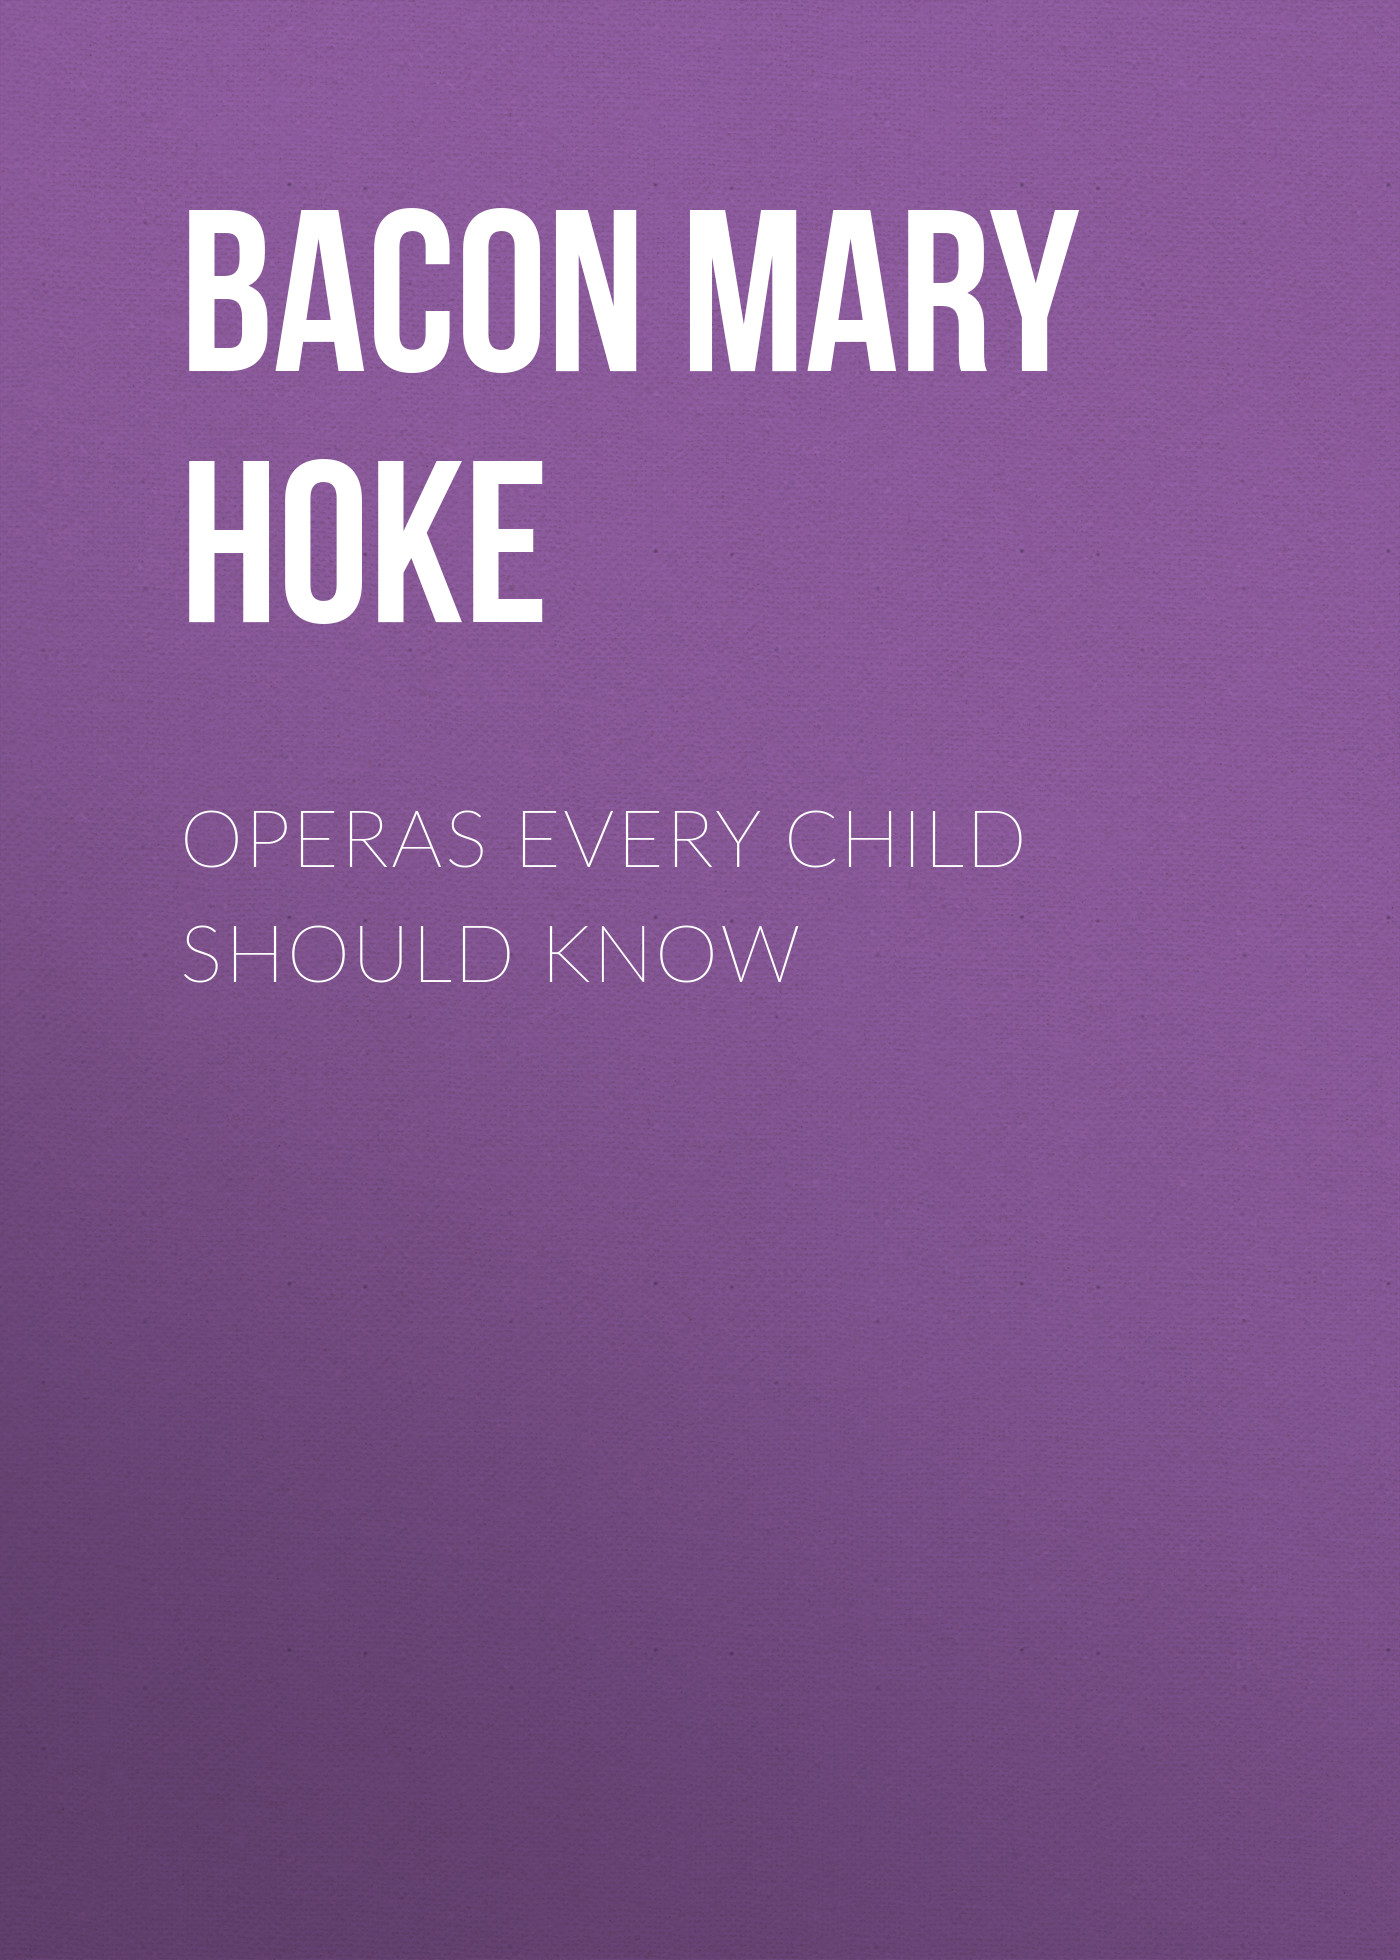 Bacon Mary Schell Hoke Operas Every Child Should Know arthur l clark bosnia what every american should know